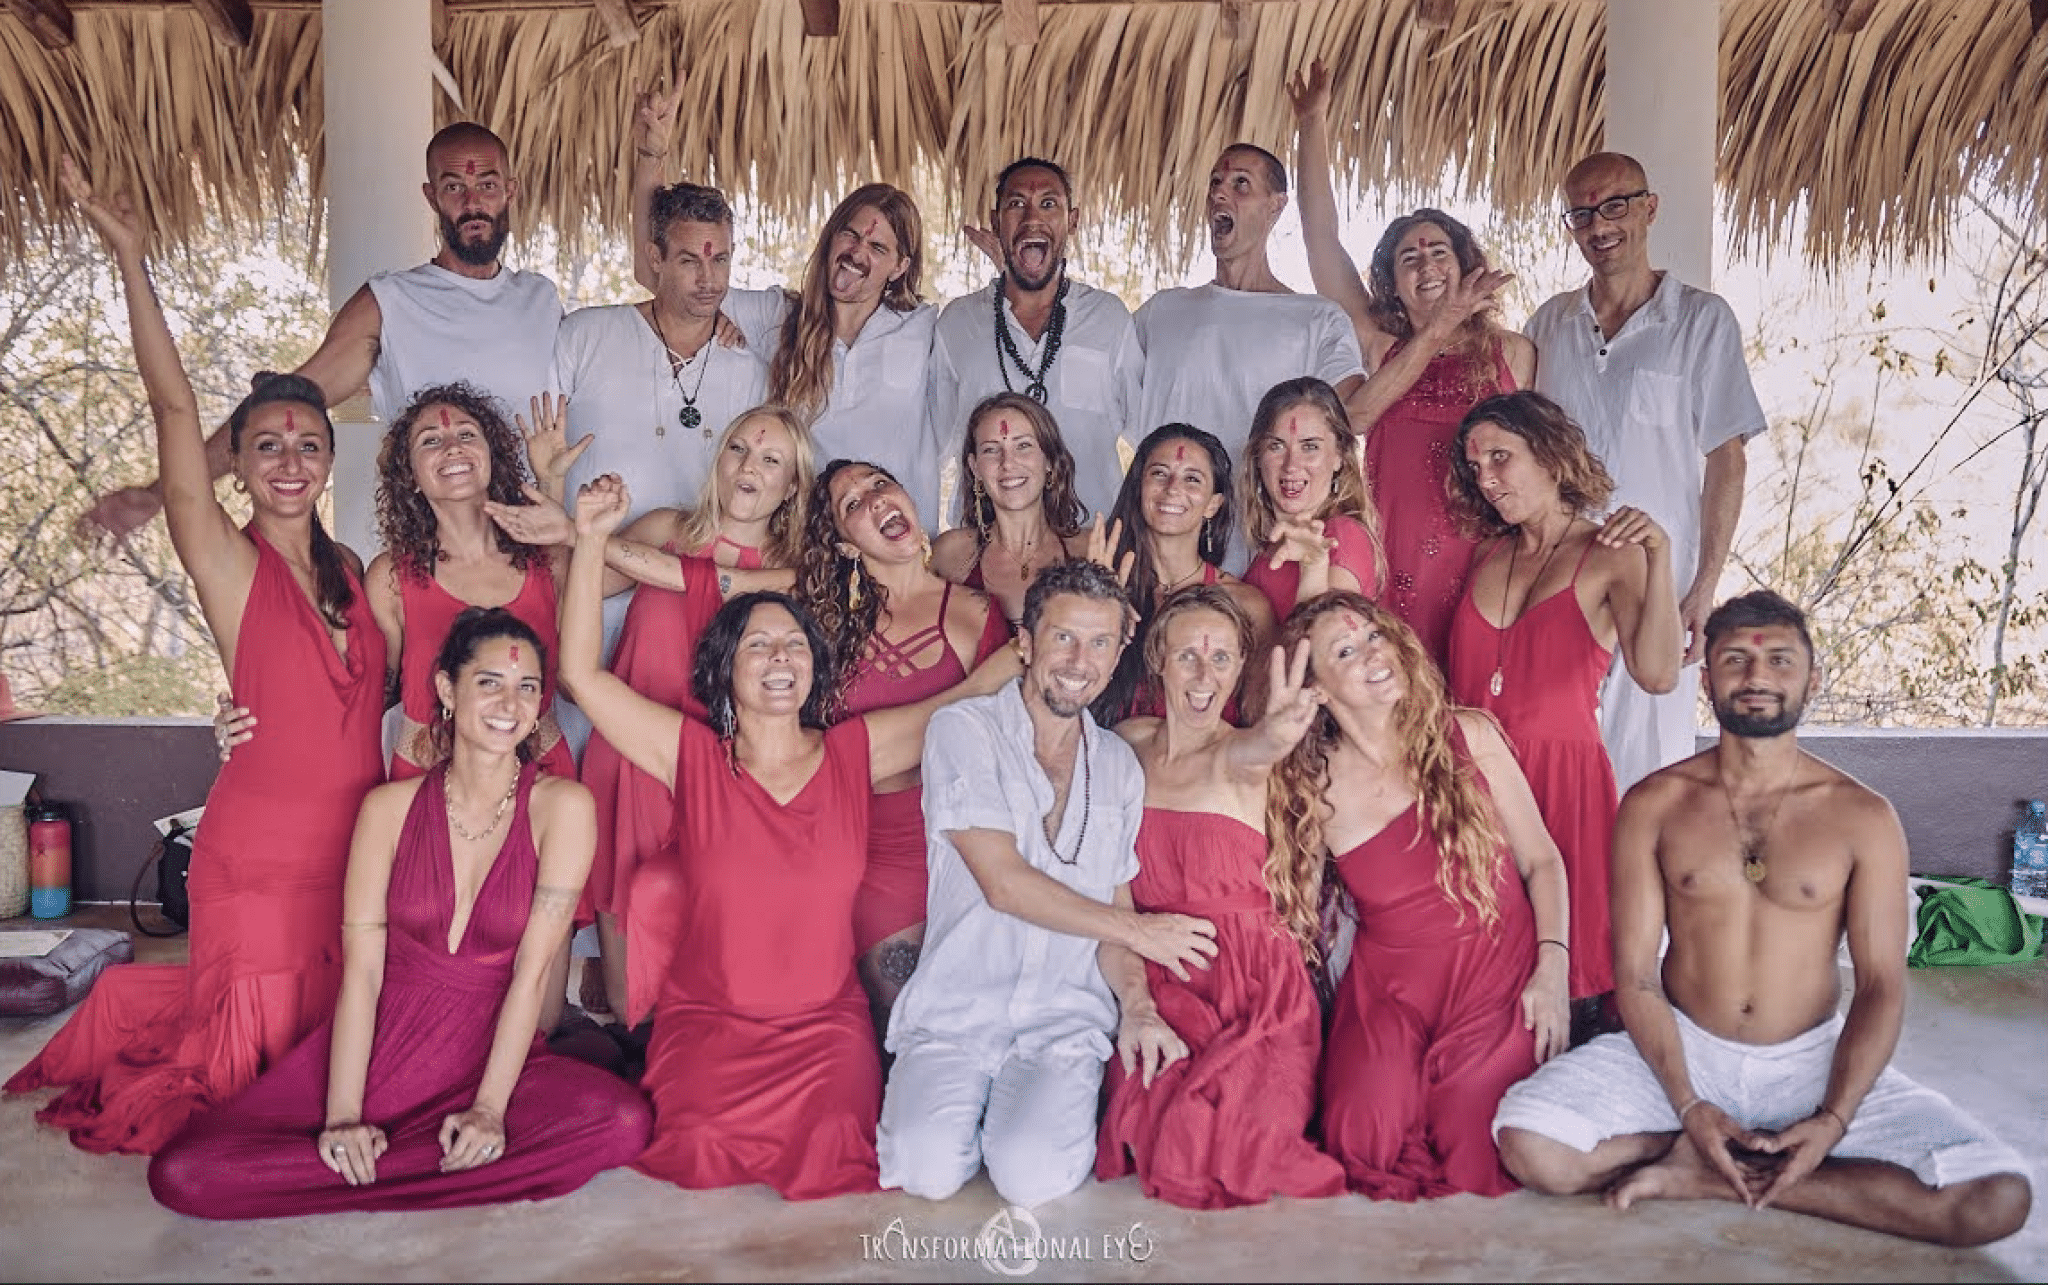 Tantra Teacher Training Course Marco and Amita with Students in Graduation Ceremony